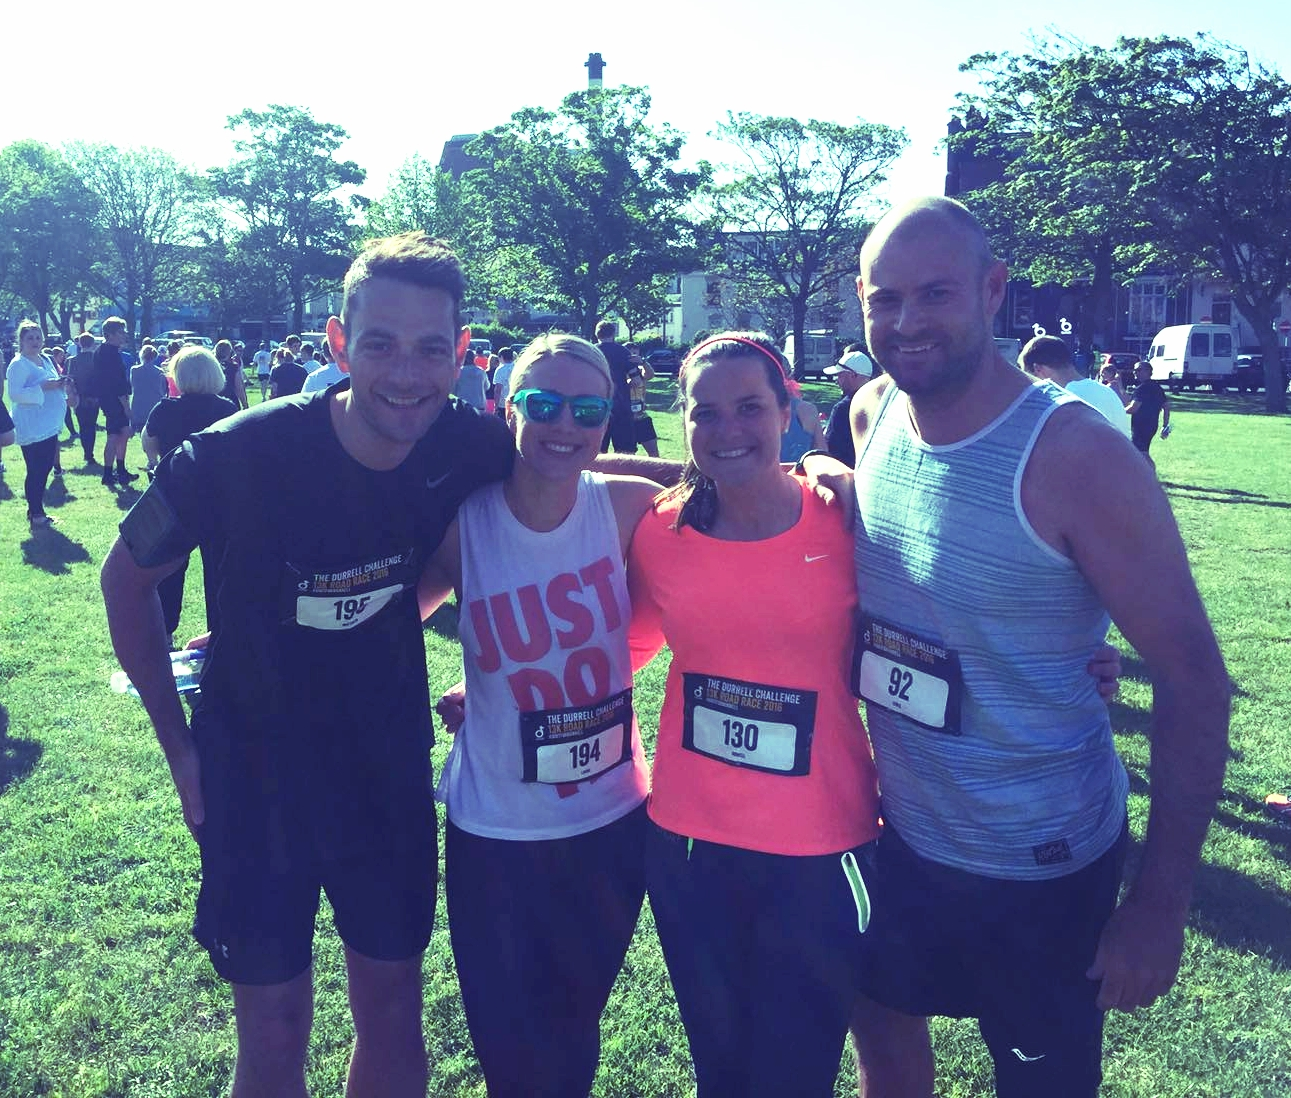 Literally running up hill with friends over the weekend in the Durrell 13k Challenge.